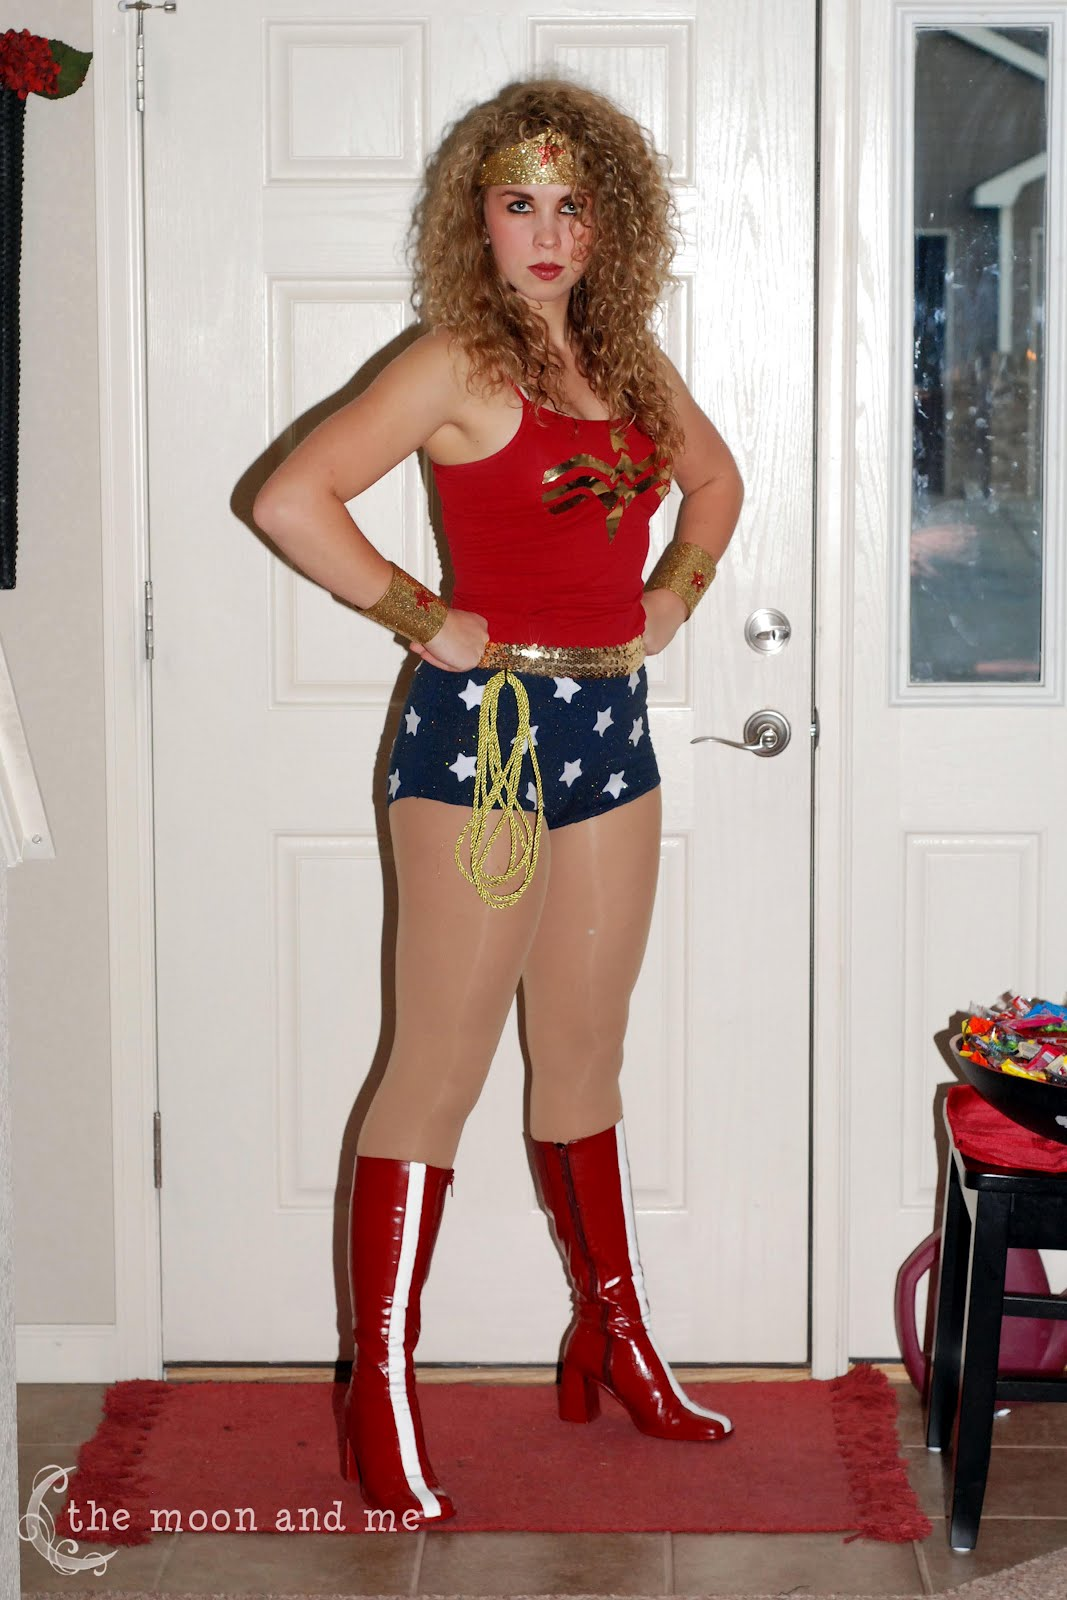 The moon and me diy wonder woman costume she did get to wear it to a party hand out candyd yes for trick or treating solutioingenieria Image collections